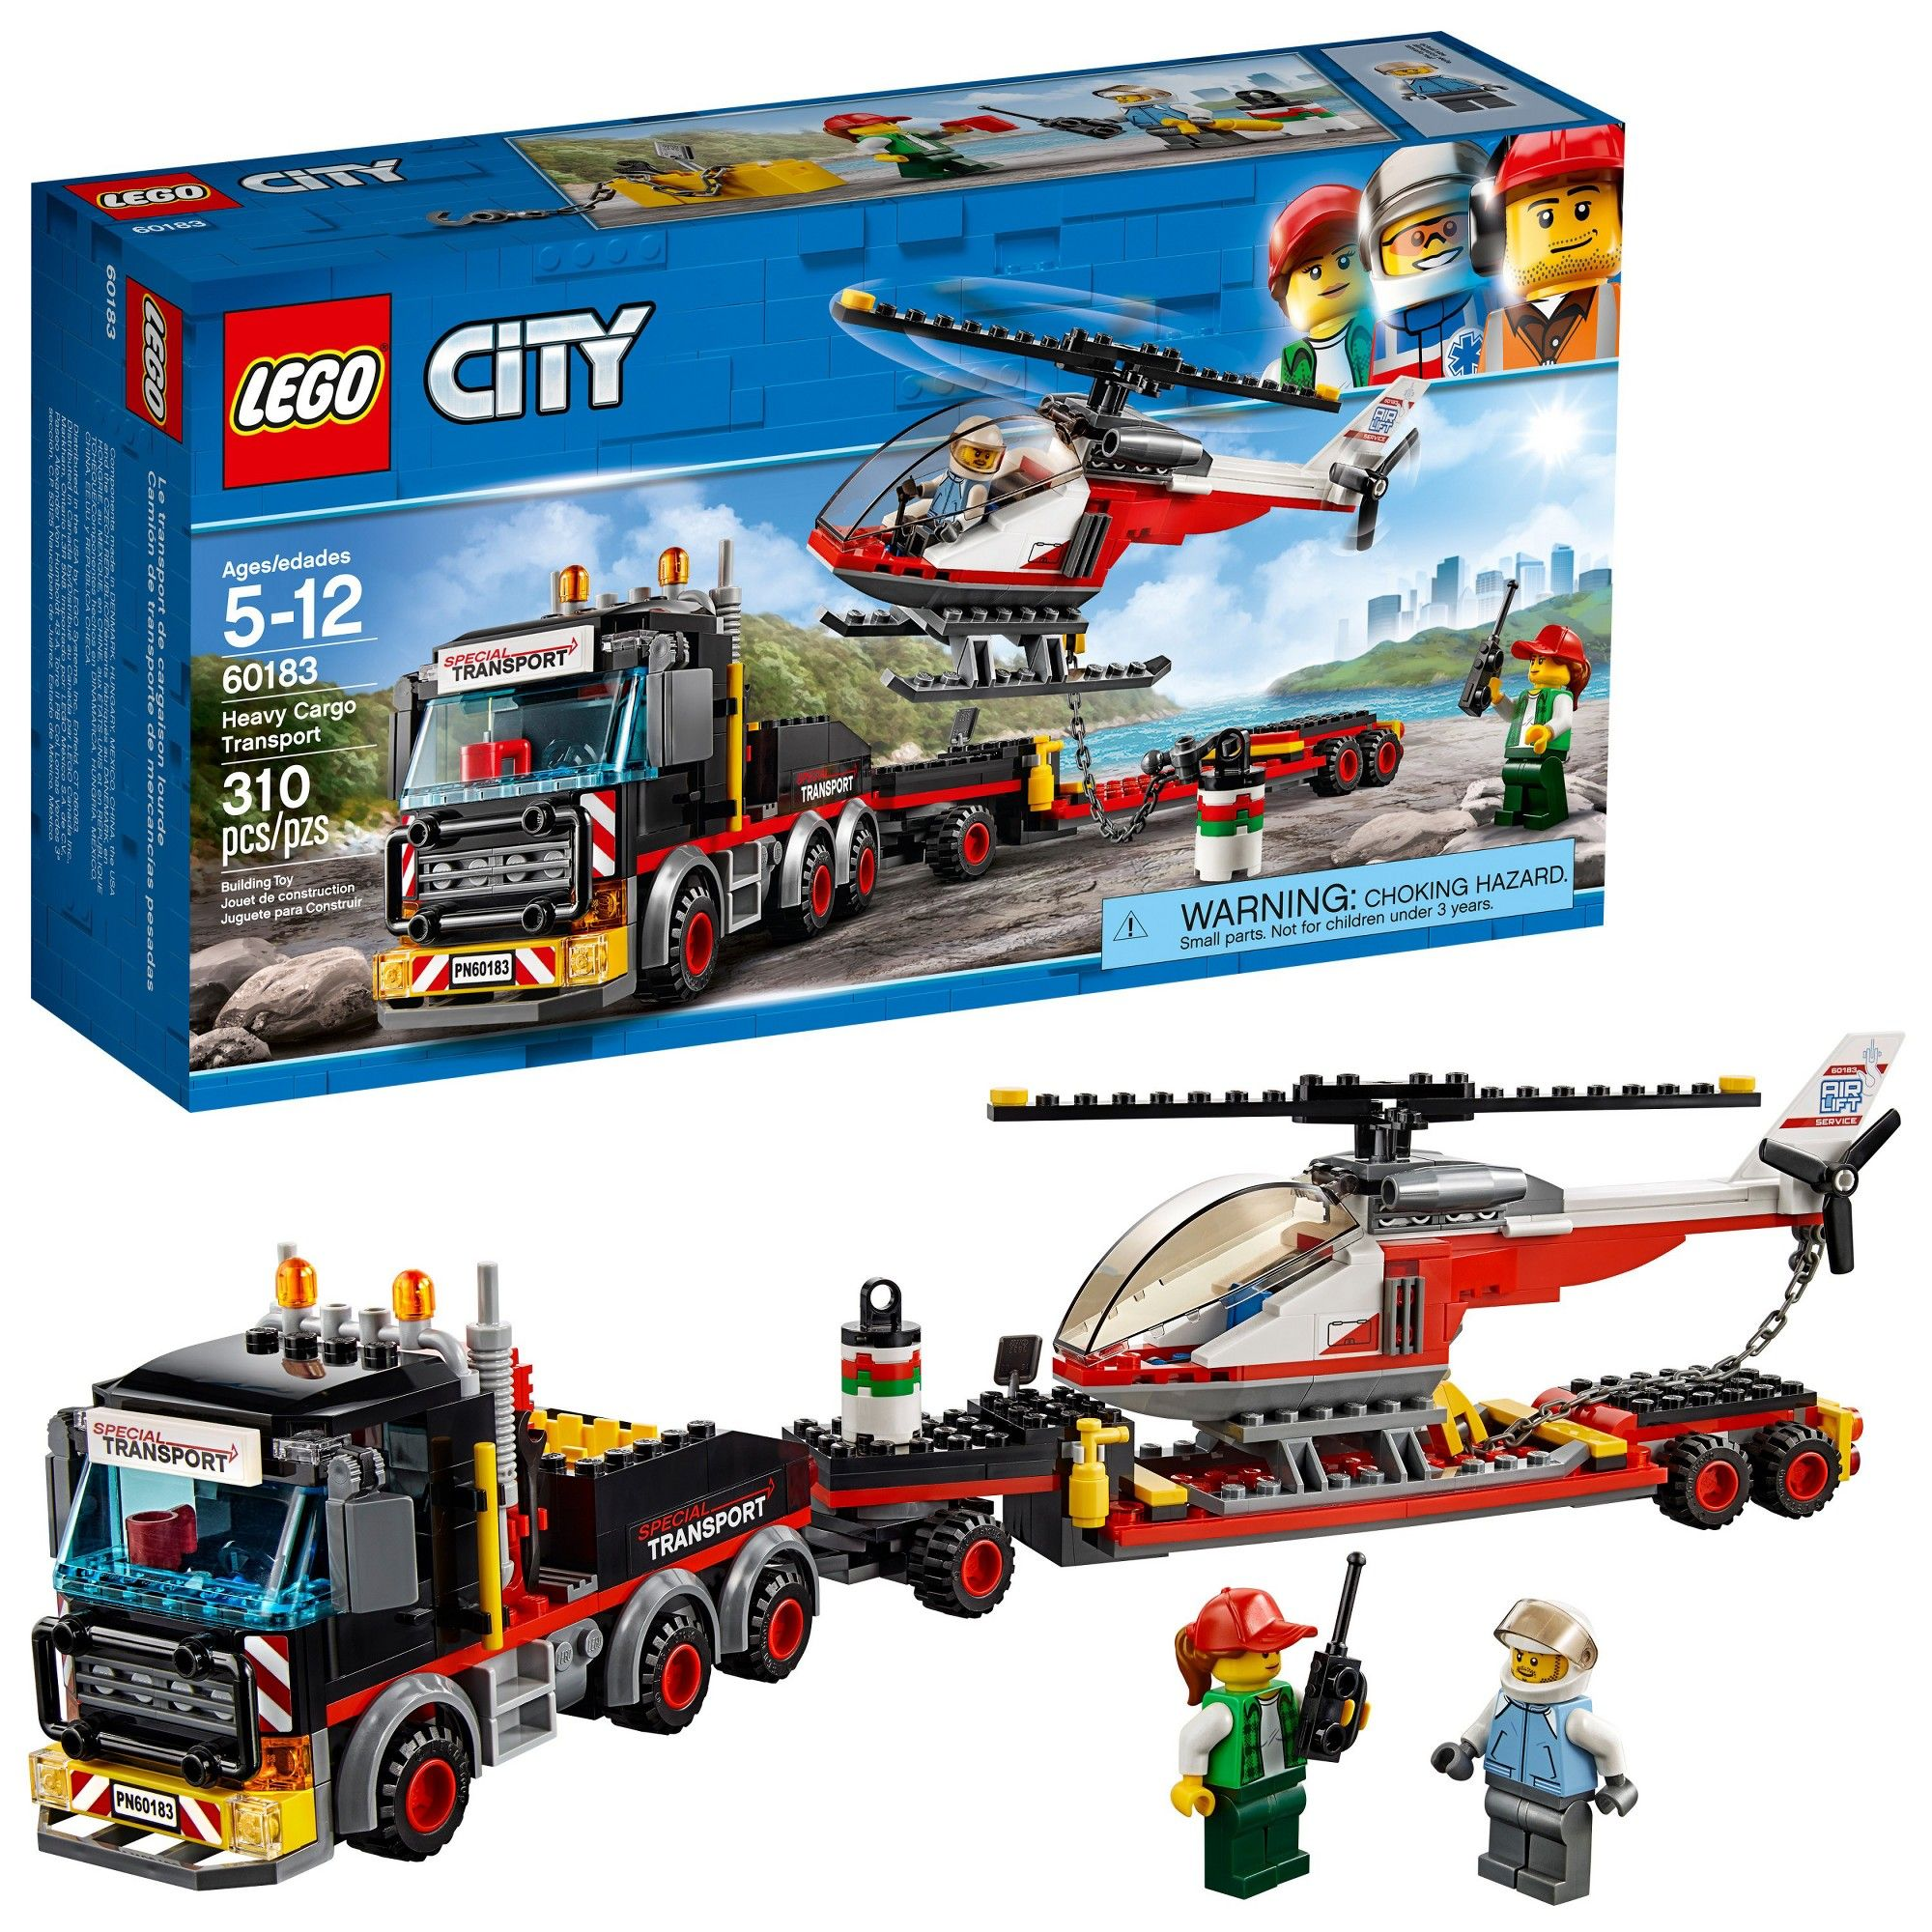 Lego City Great Vehicles Heavy Cargo Transport 60183 Products Snap Circuitsr Deluxe Sound Light Combo Walmartcom